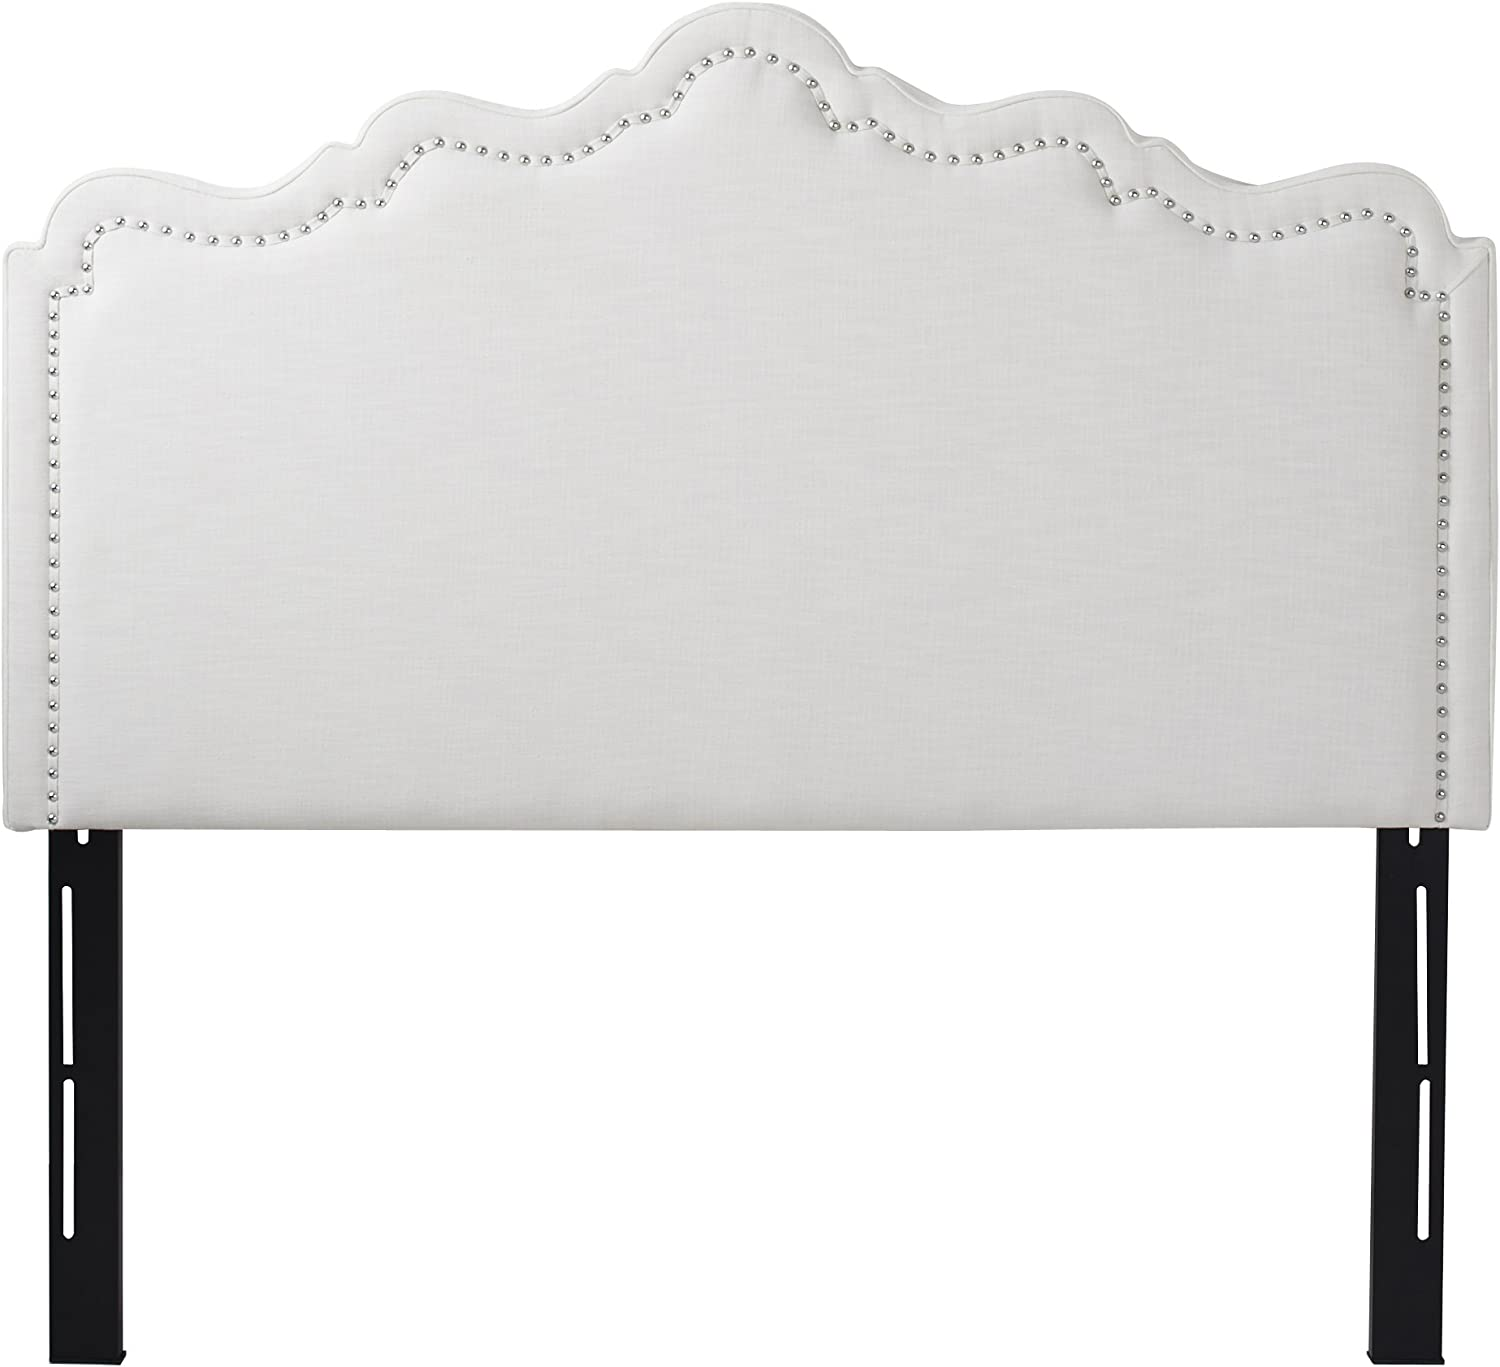 Jennifer Taylor Home Ela Collection Upholstered Nailhead Trim Designed Luxury Queen Size Size Headboard With Trim, Queen Size, Star White